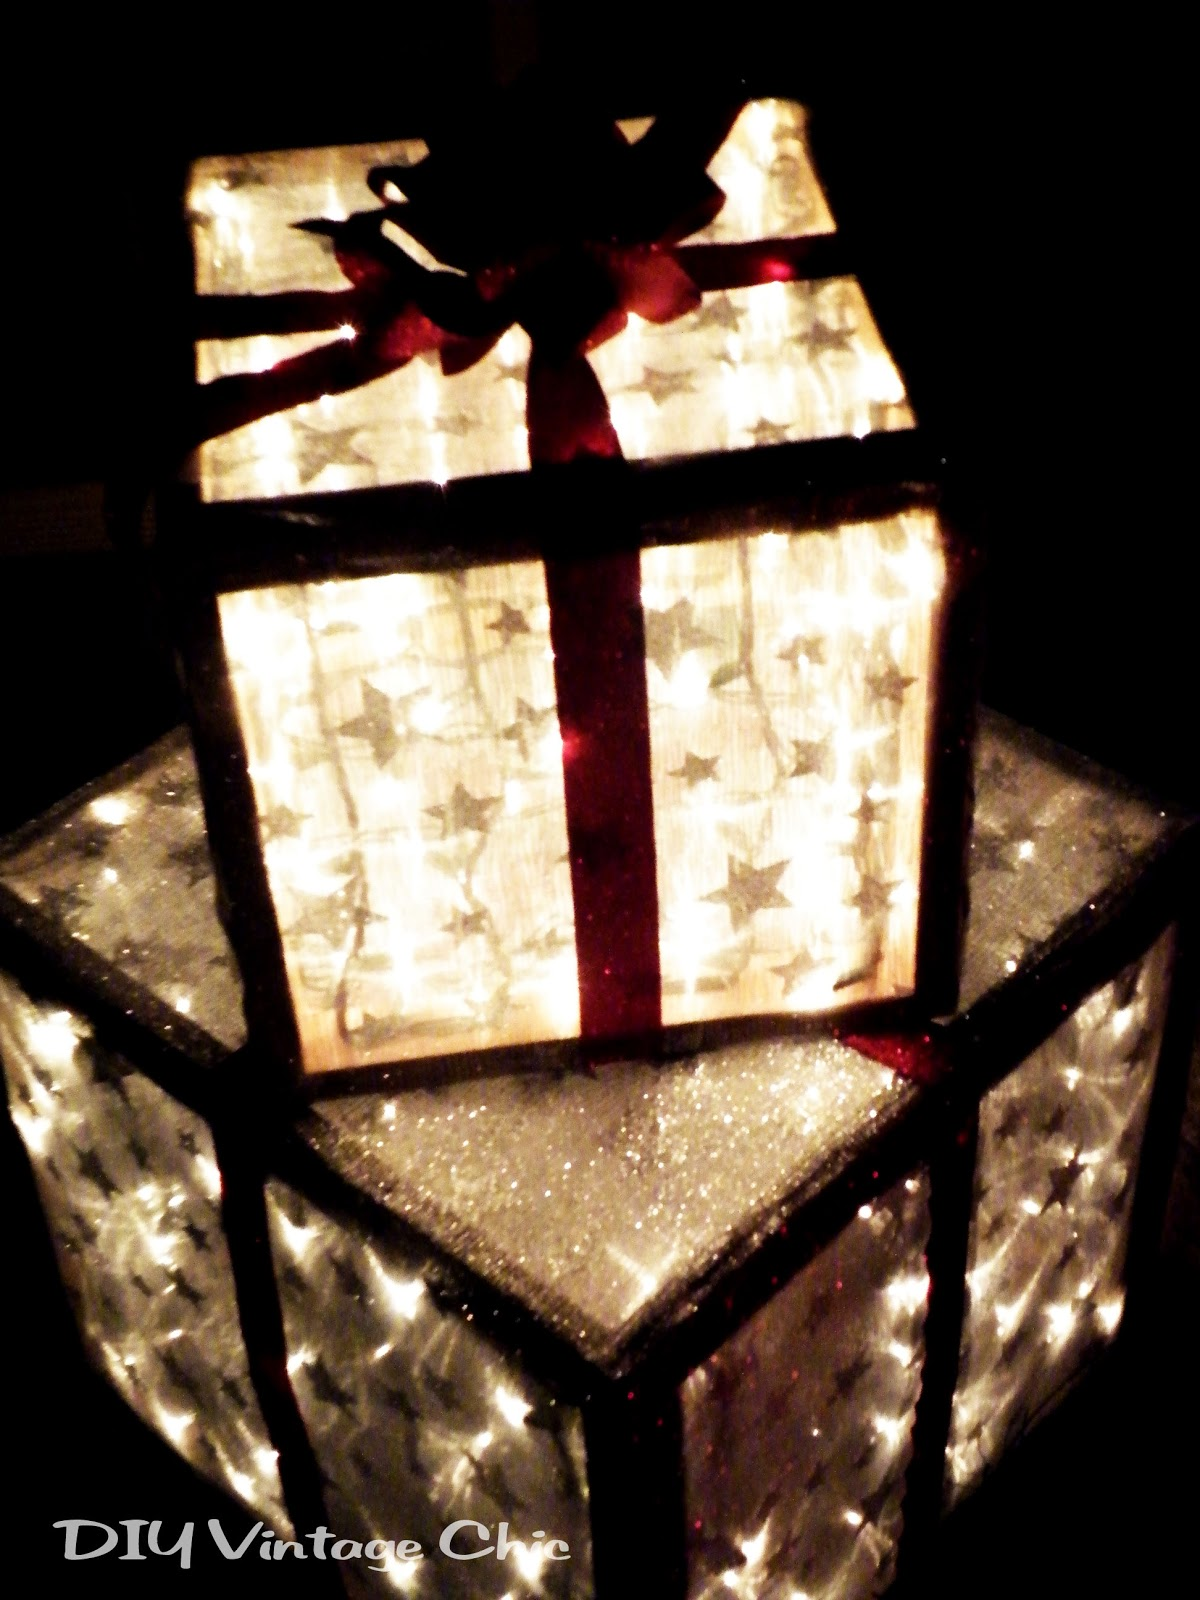 Diy vintage chic how to make lighted christmas presents for Christmas lights and decorations